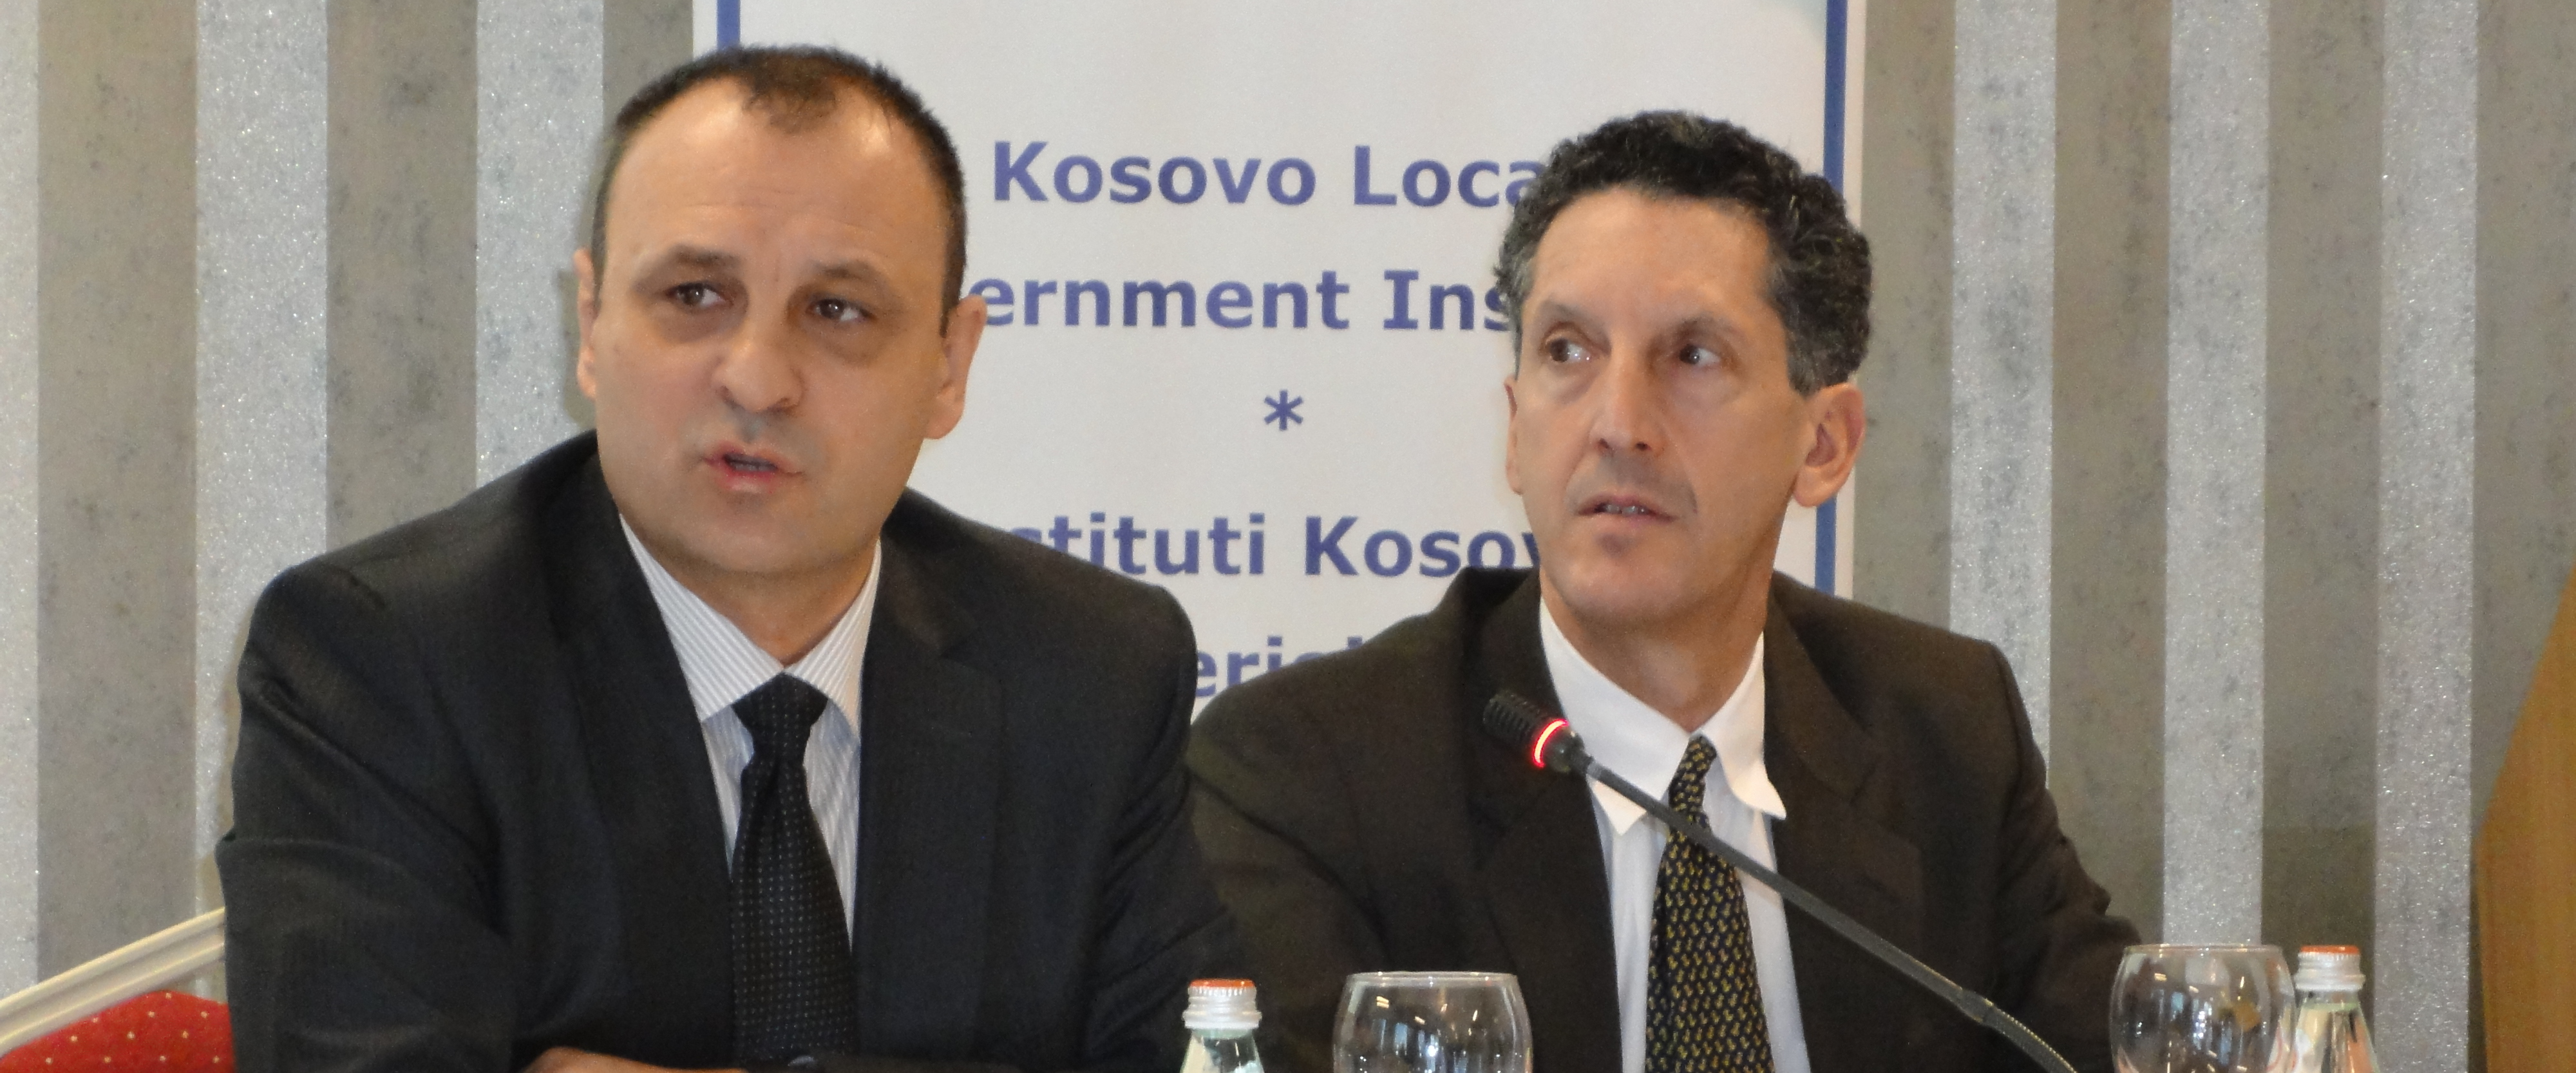 Edward P. Joseph seated next to Slobodan Petrovic, Deputy Prime Minister of Kosovo.